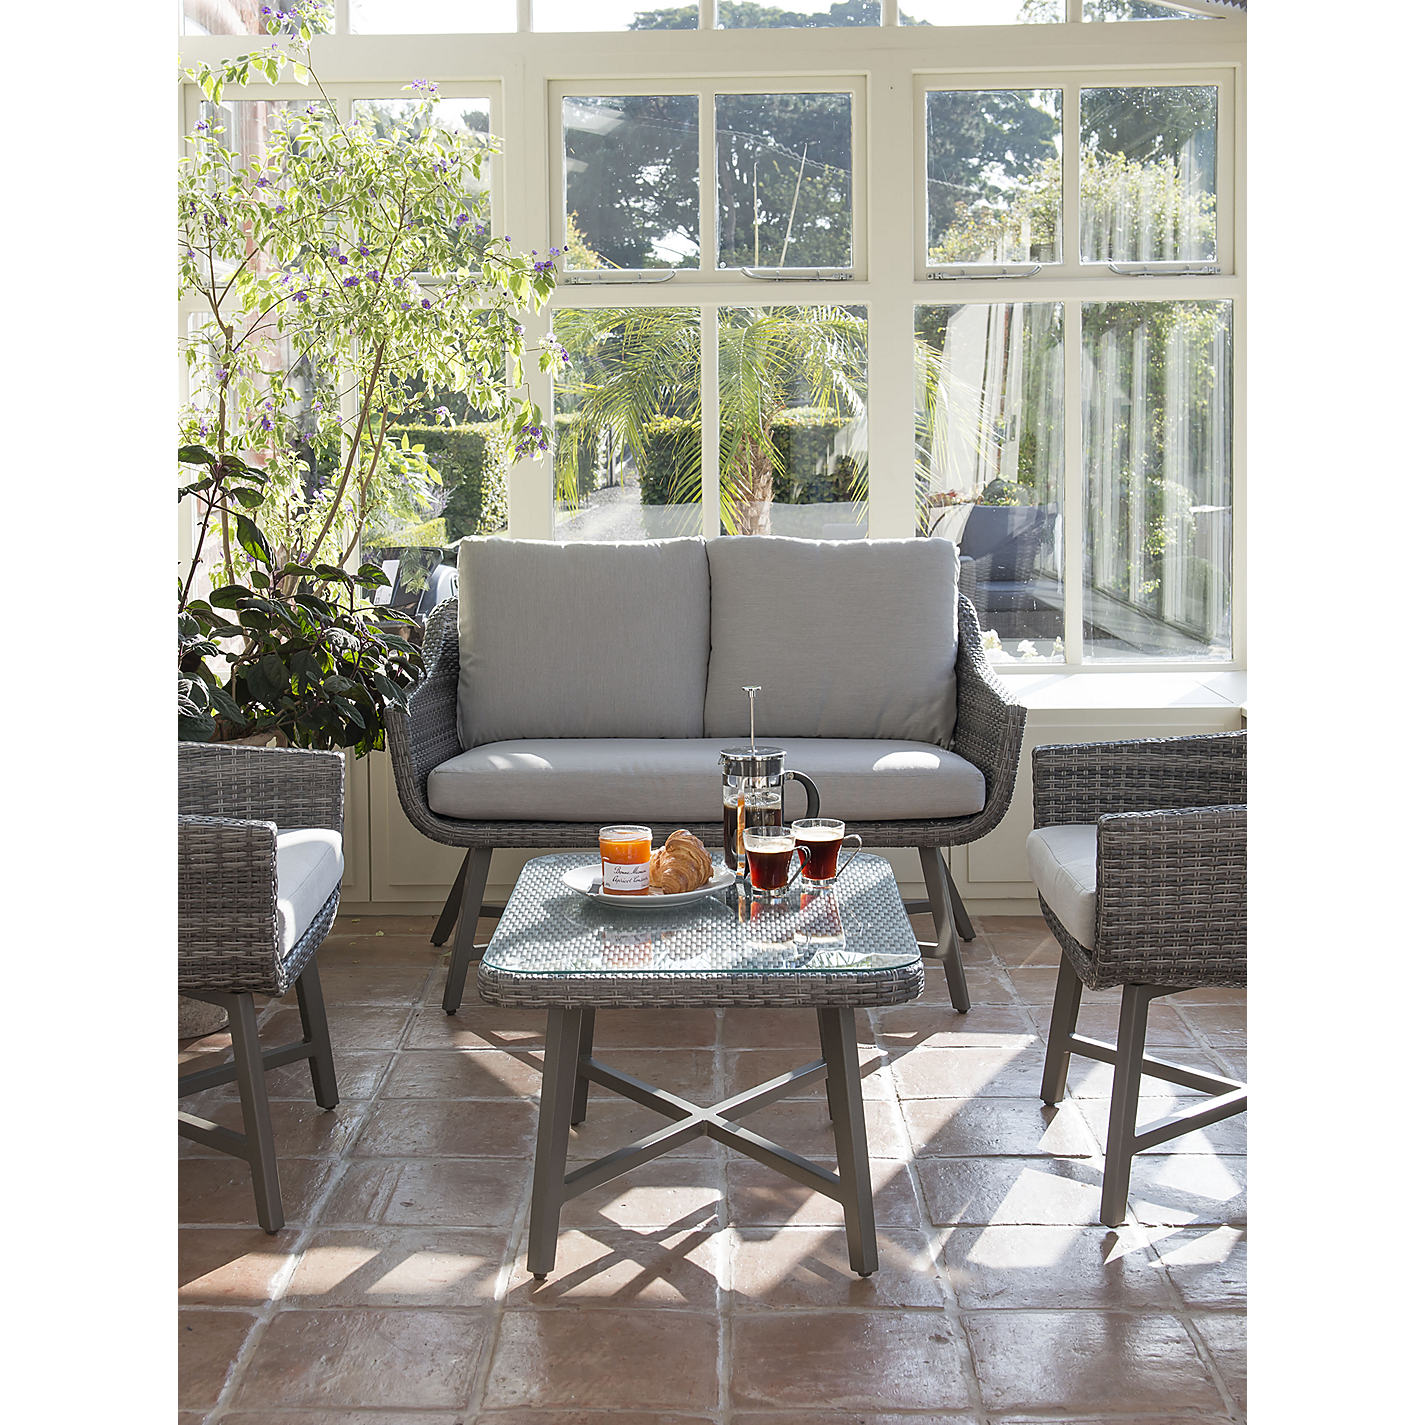 Buy KETTLER LaMode Outdoor Furniture Range